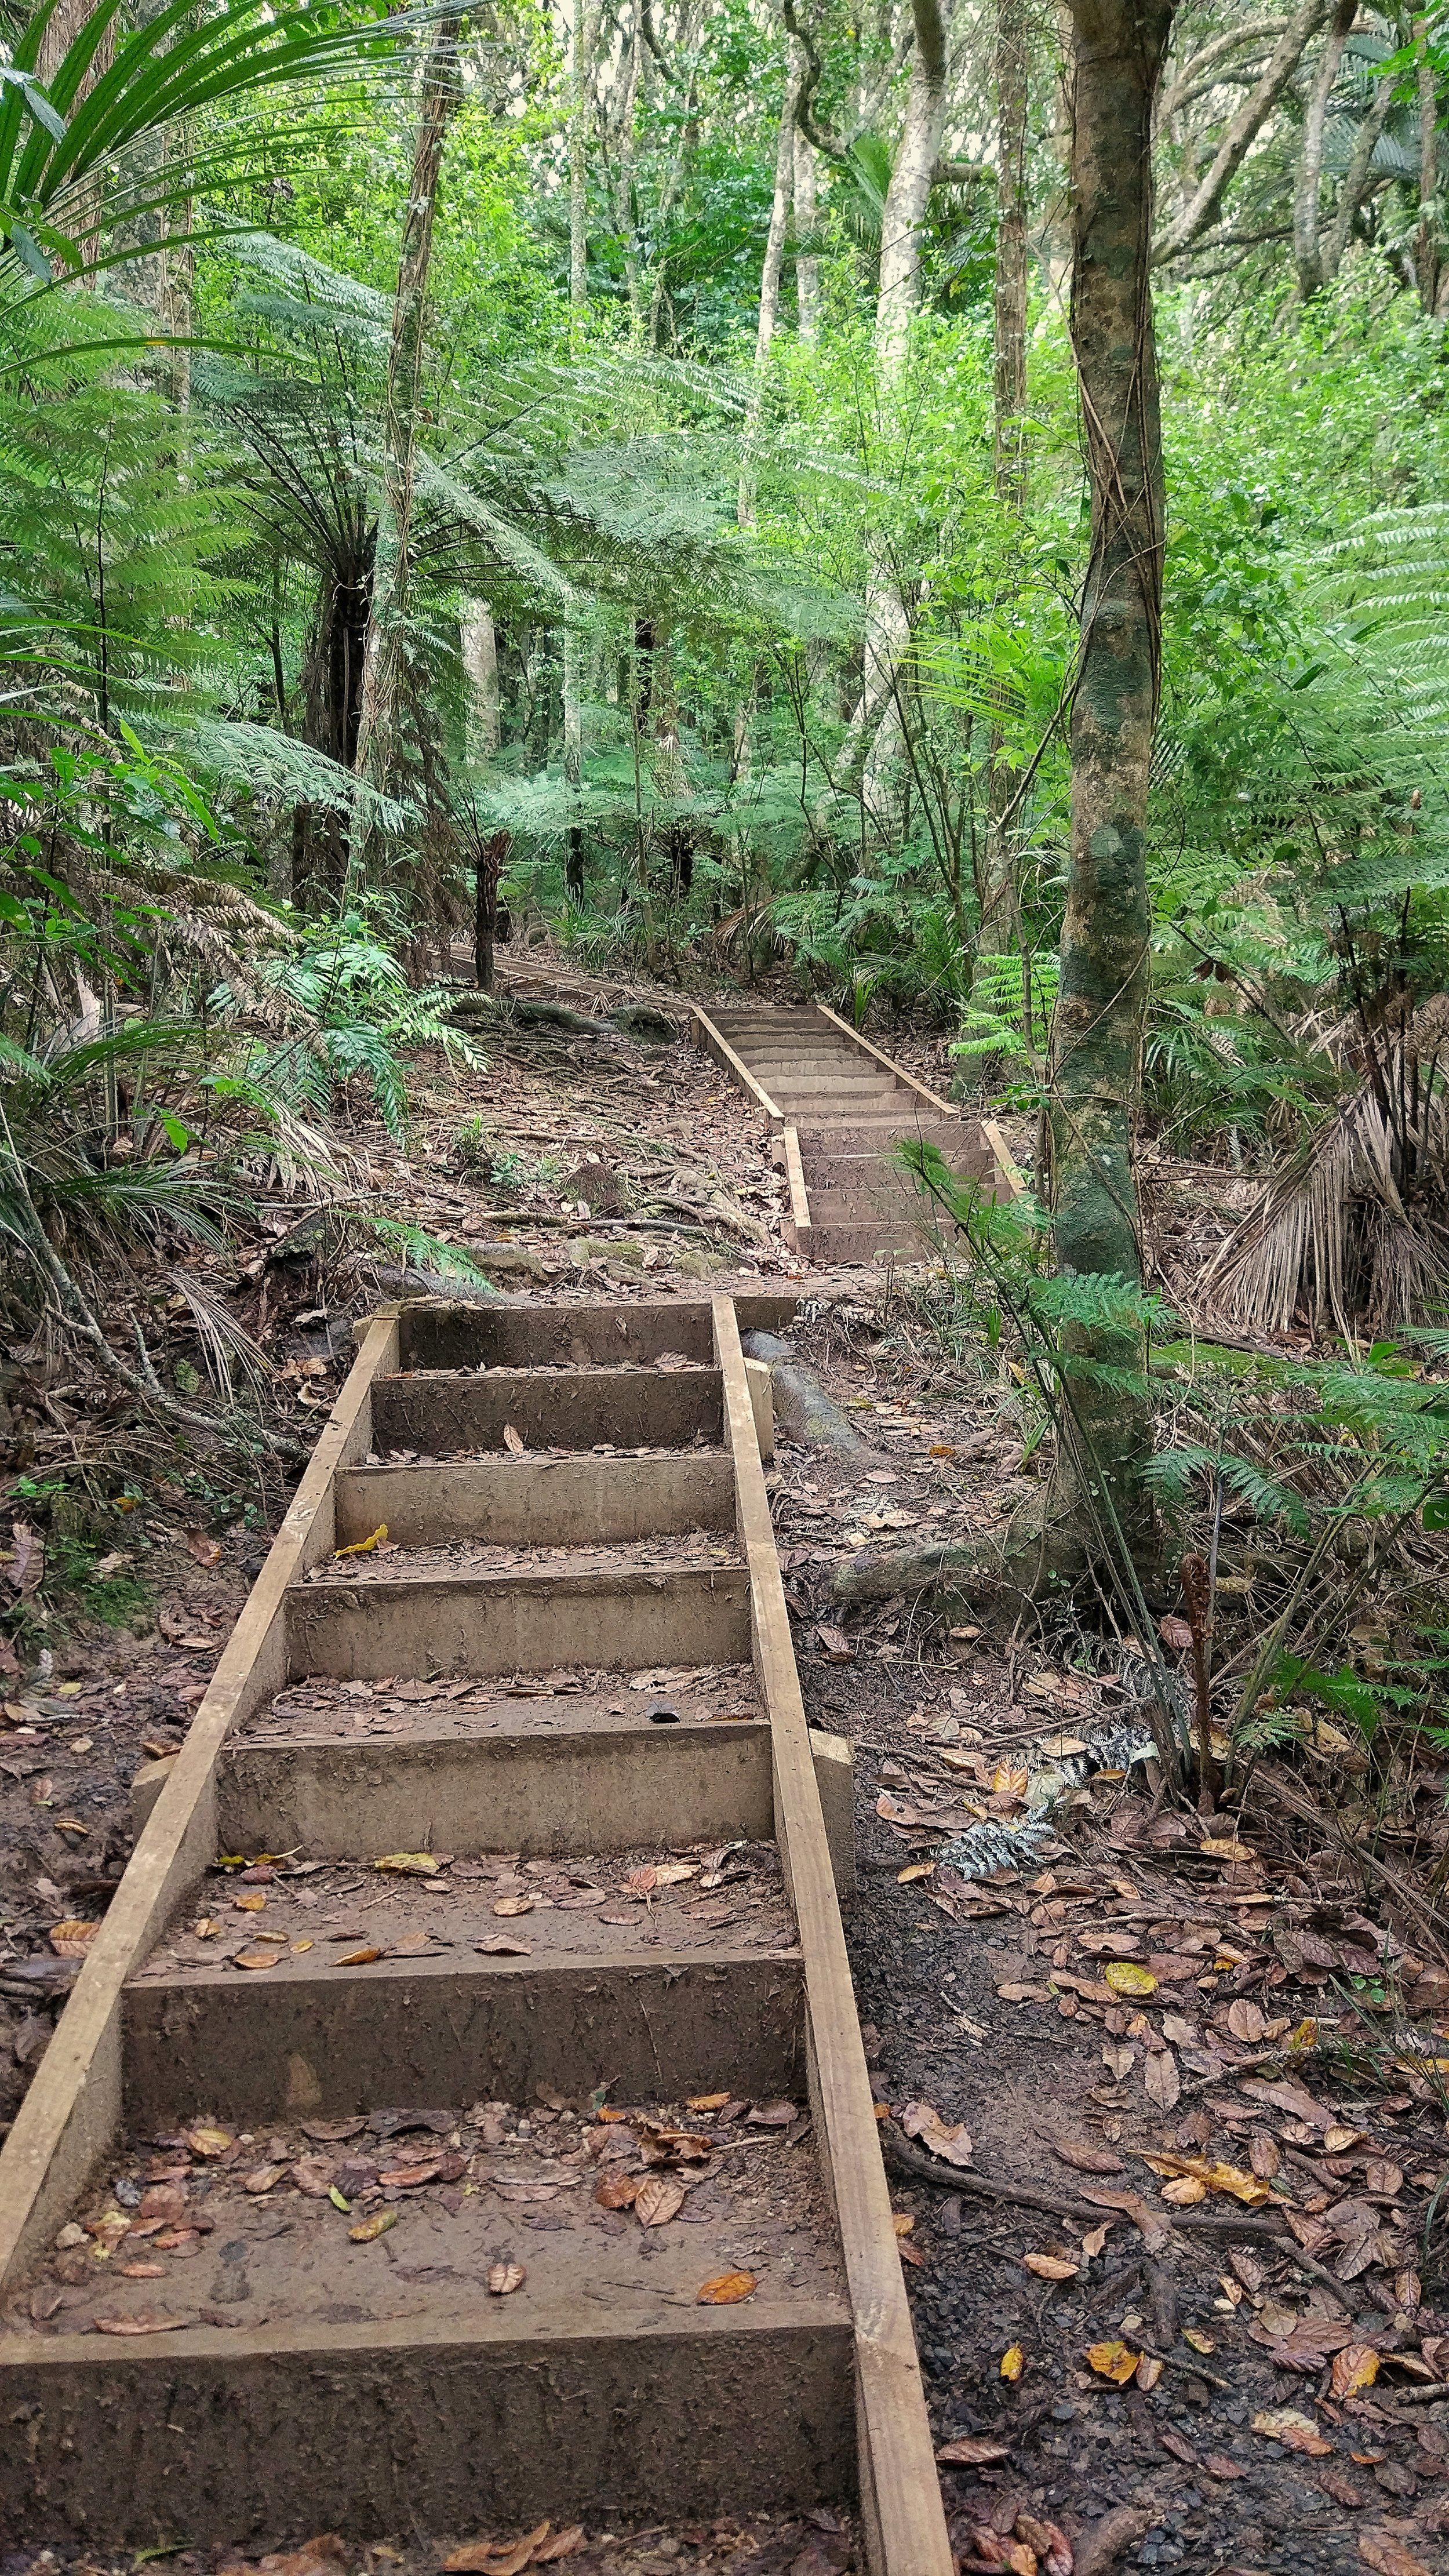 20171022_New_Zealand_Clevedon_scenic_reserve_stairs.jpeg